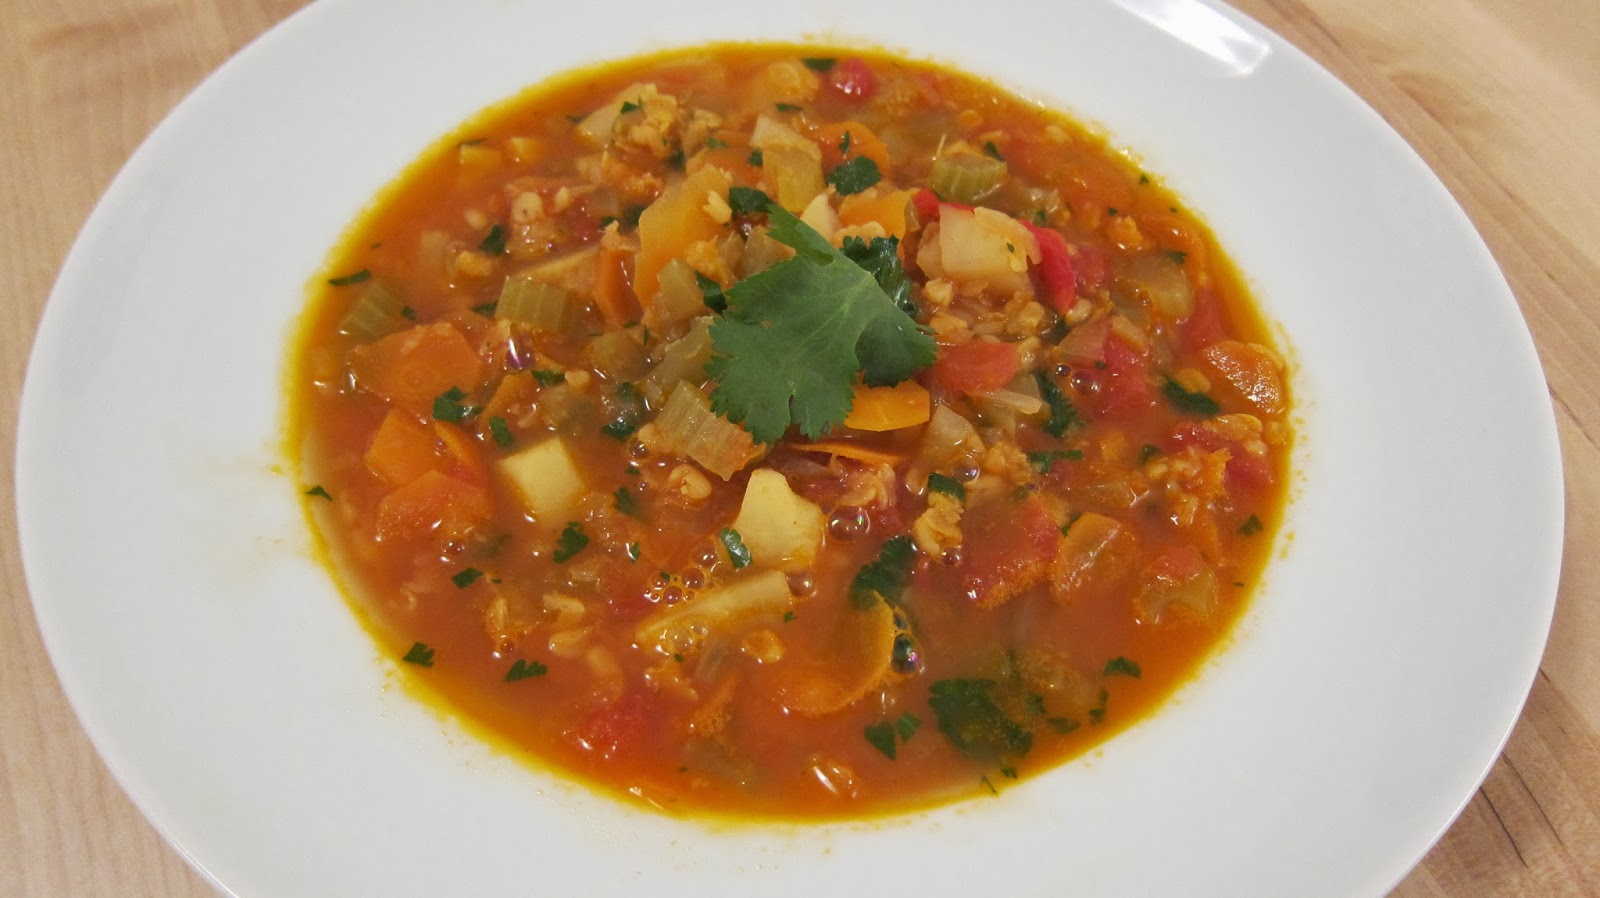 Beyond Recipes A Food And Recipe Blog Vegetable And Lentil Soup With An Exotic Twist